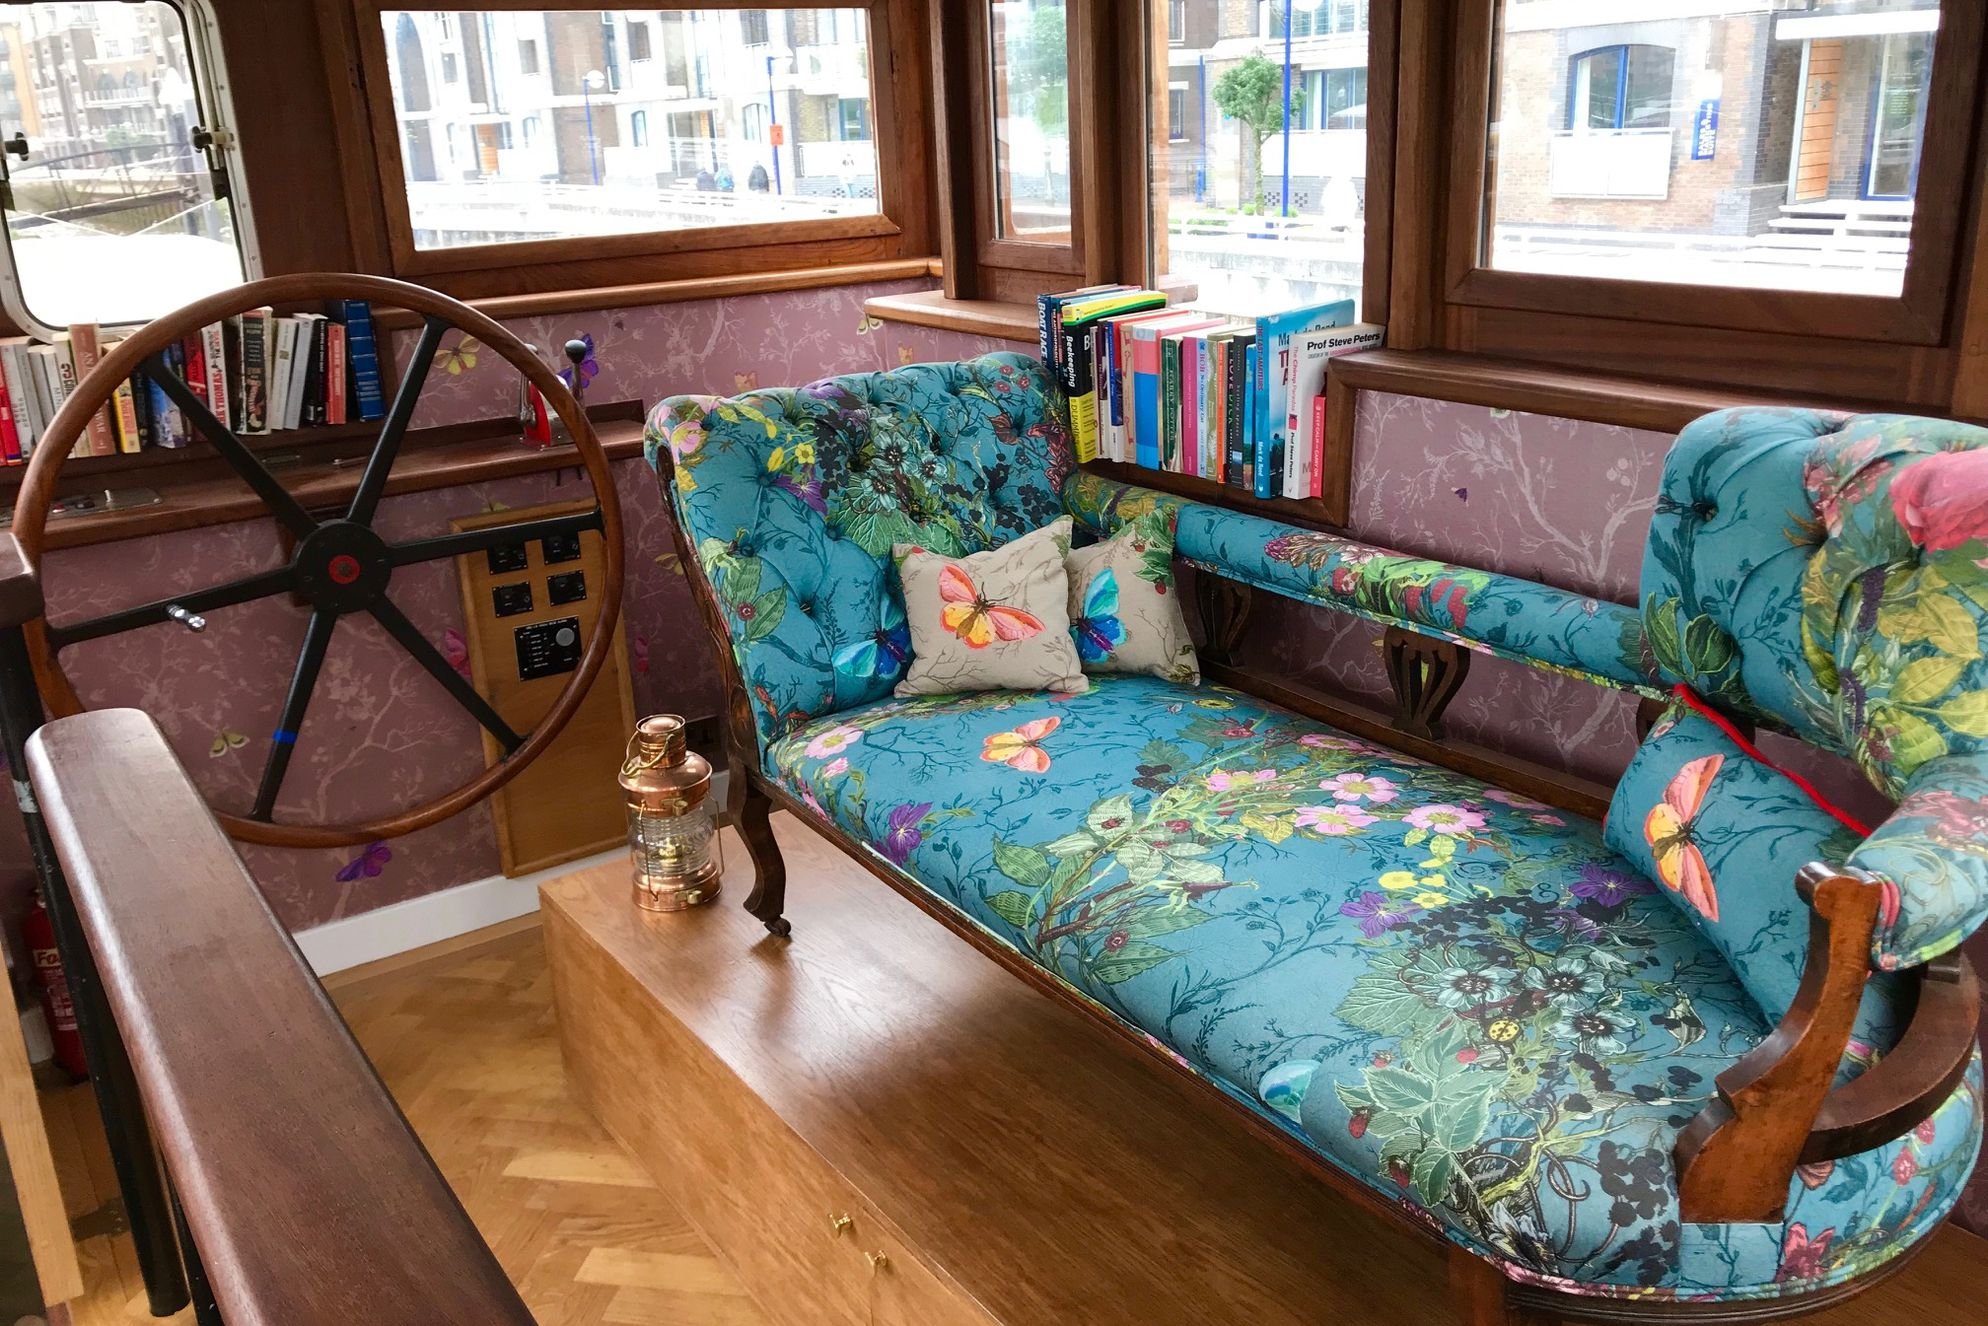 Main living area on Ara barge in Battersea, London at front of the boat with steering wheel feature and colourful floral sofa